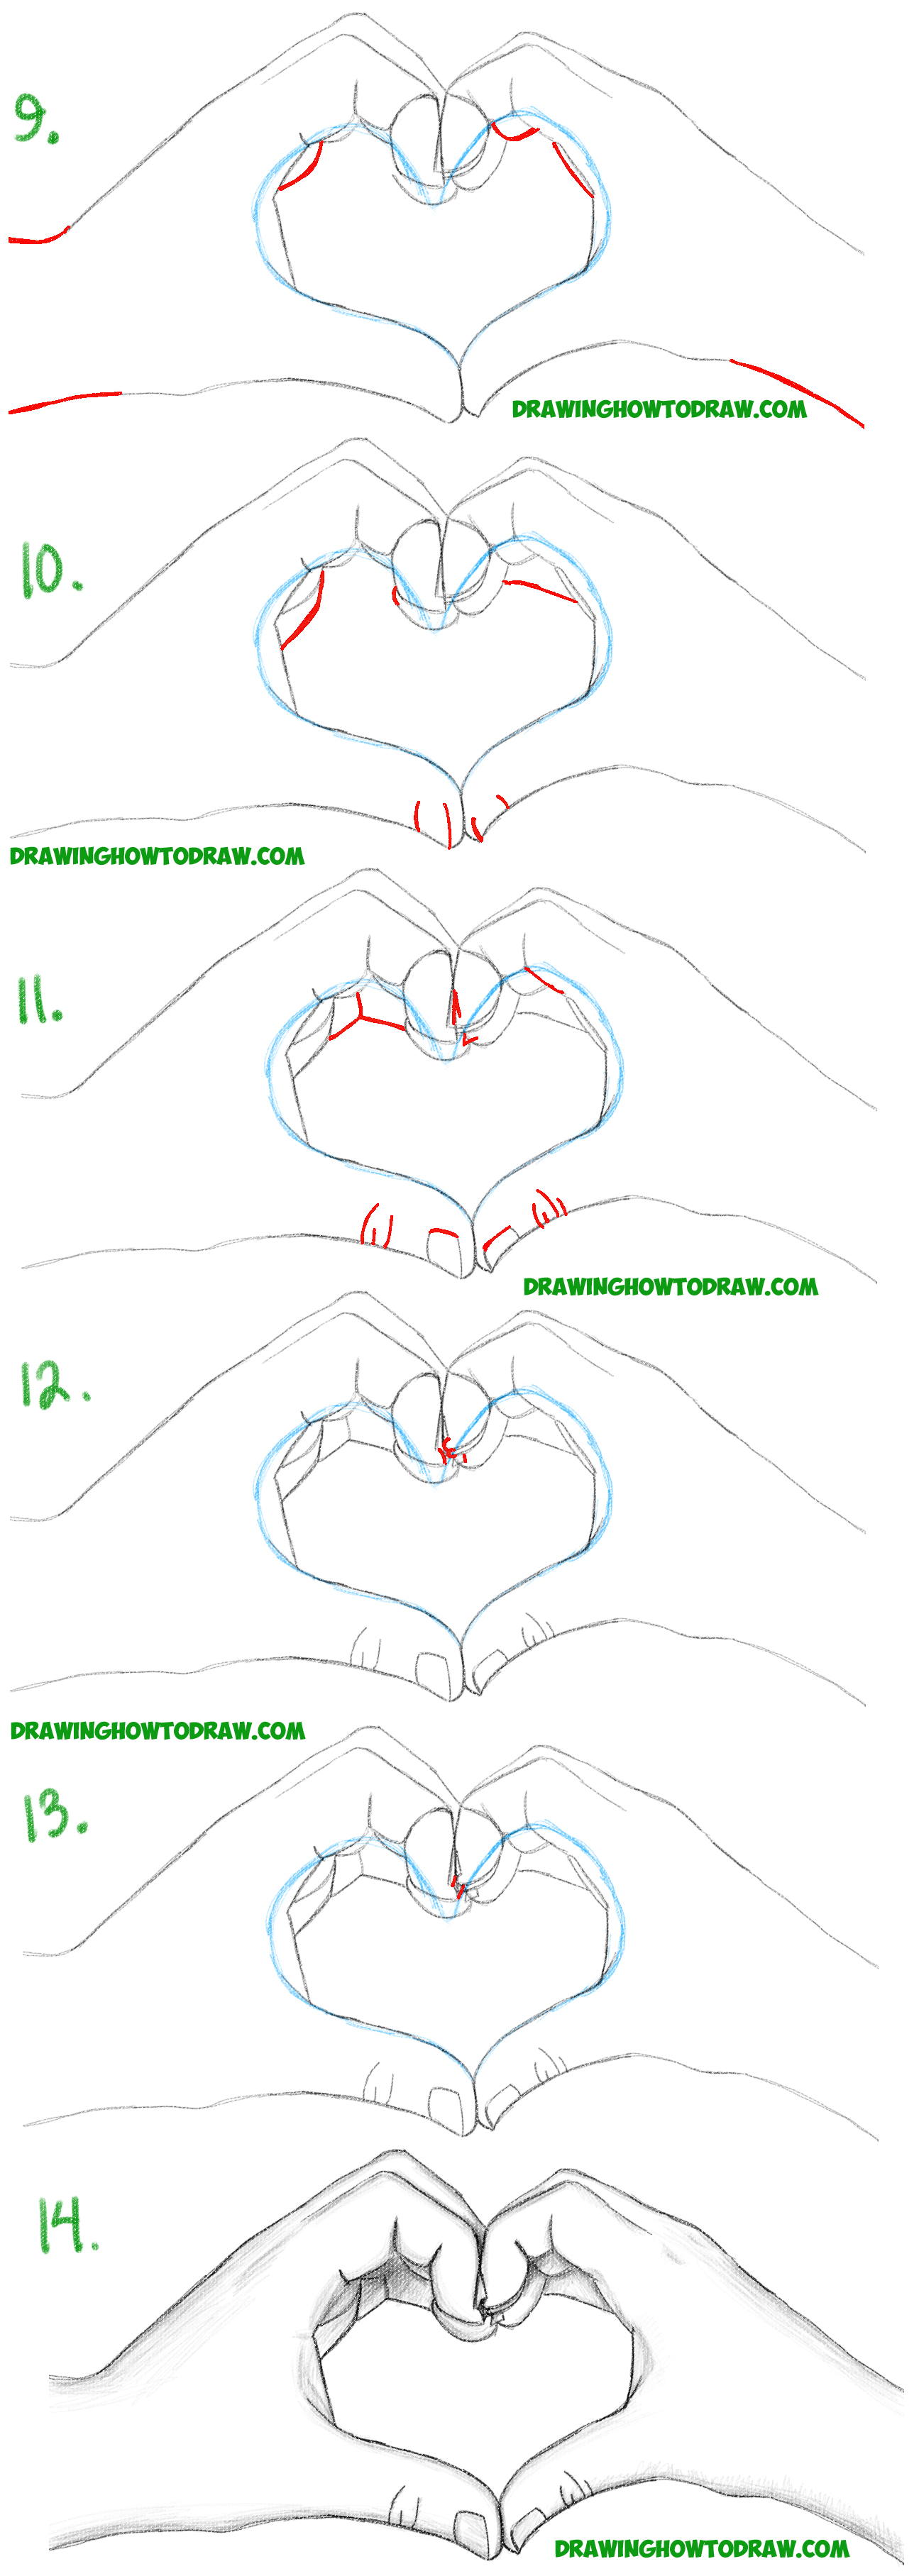 How to Draw Heart Hands in Easy to Follow Step by Step ...